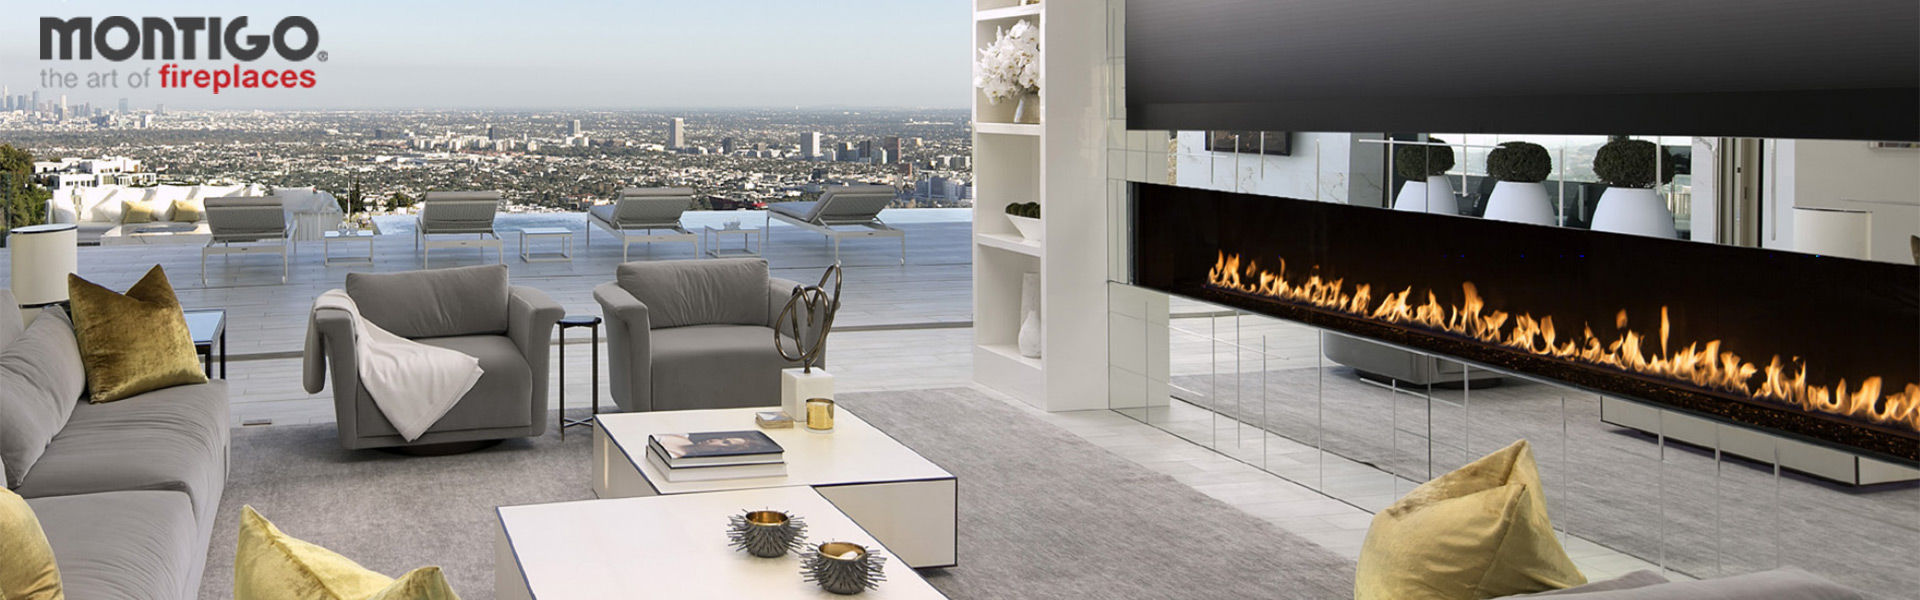 Montigo - The Art of Fireplaces